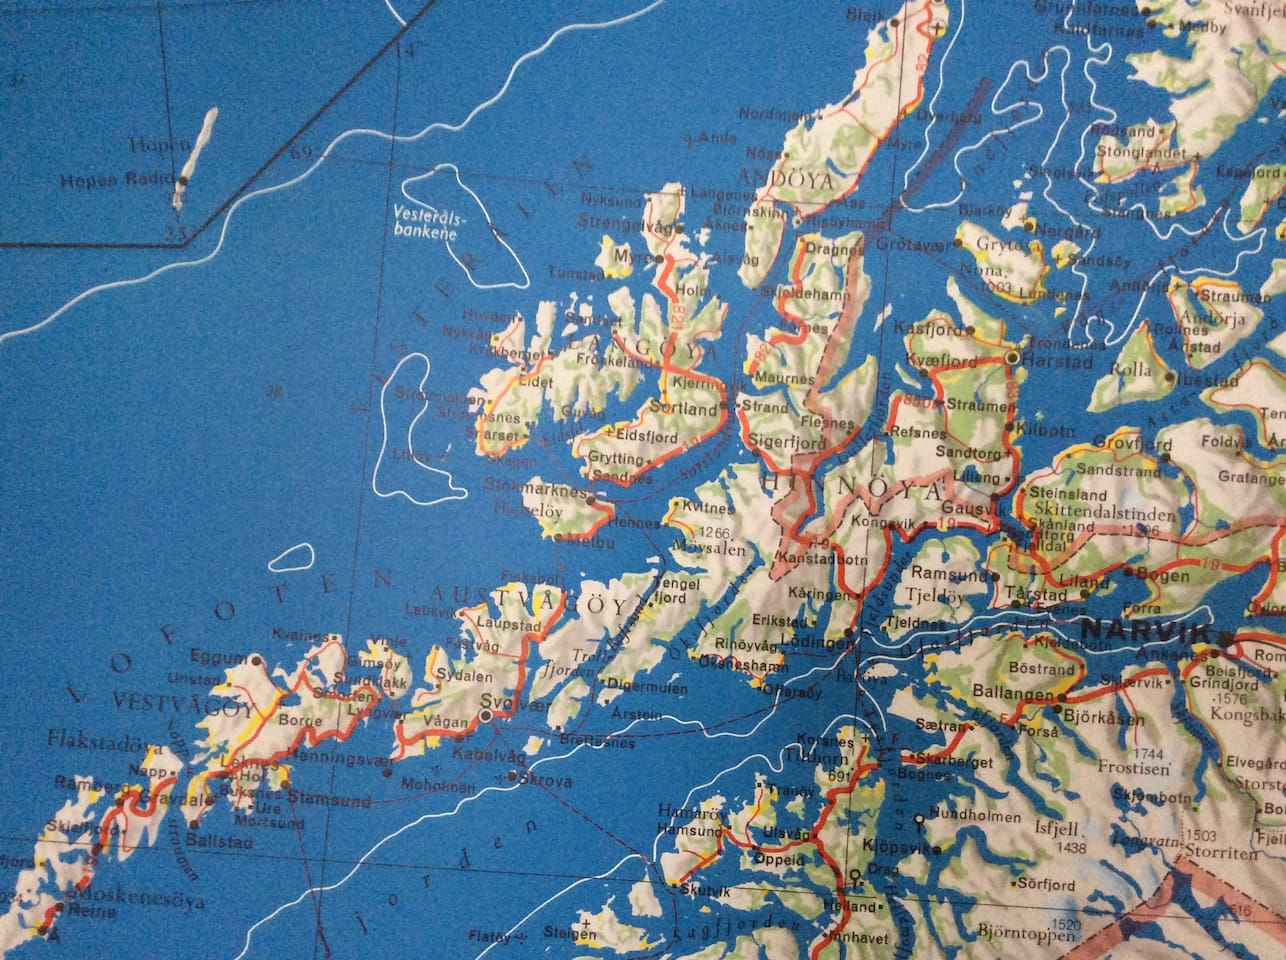 One of our maps in the house. We love maps!